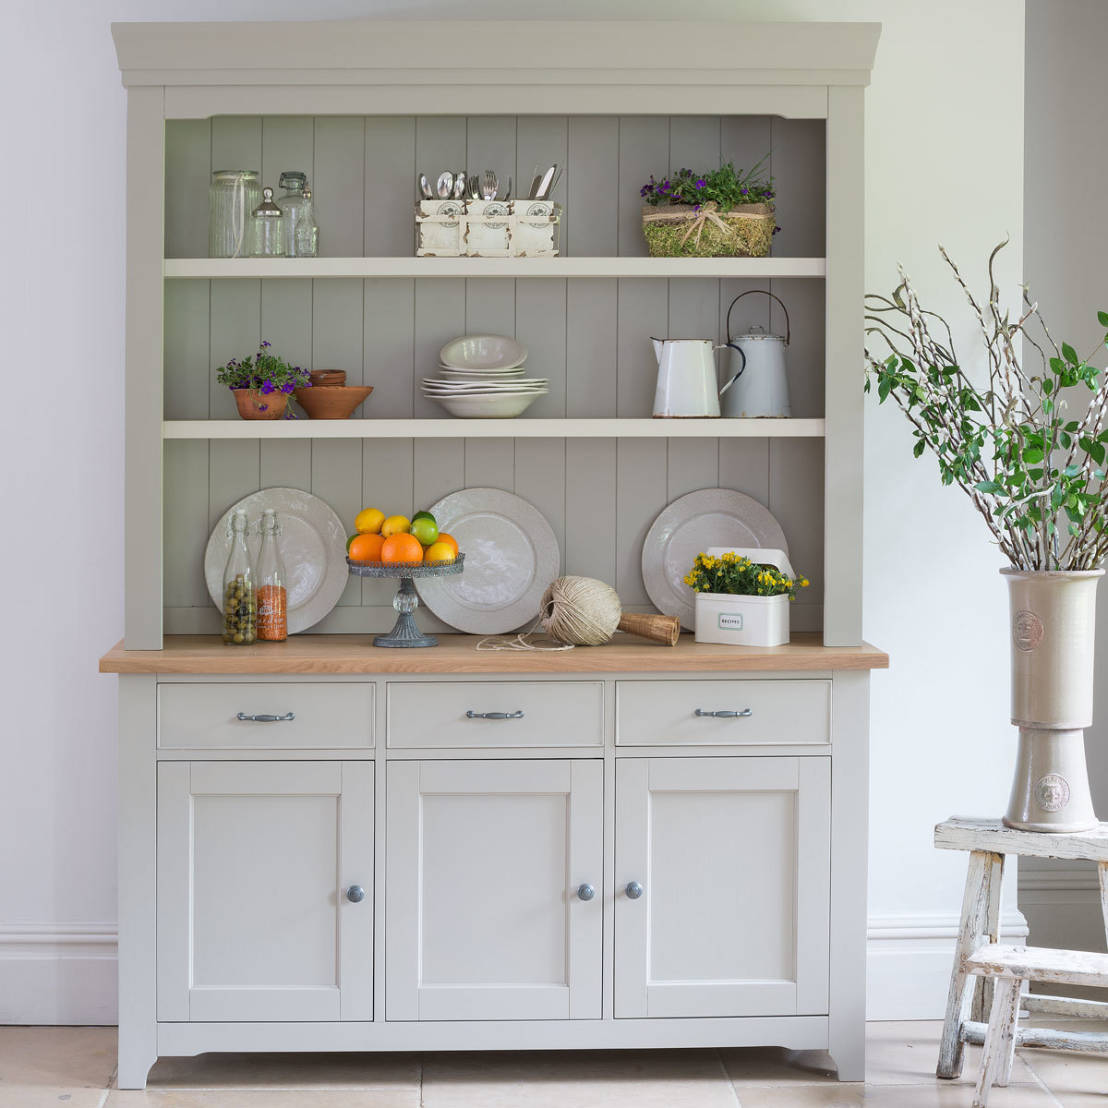 Country Kitchen Dresser: 8 Country Style Sideboards And Cabinets